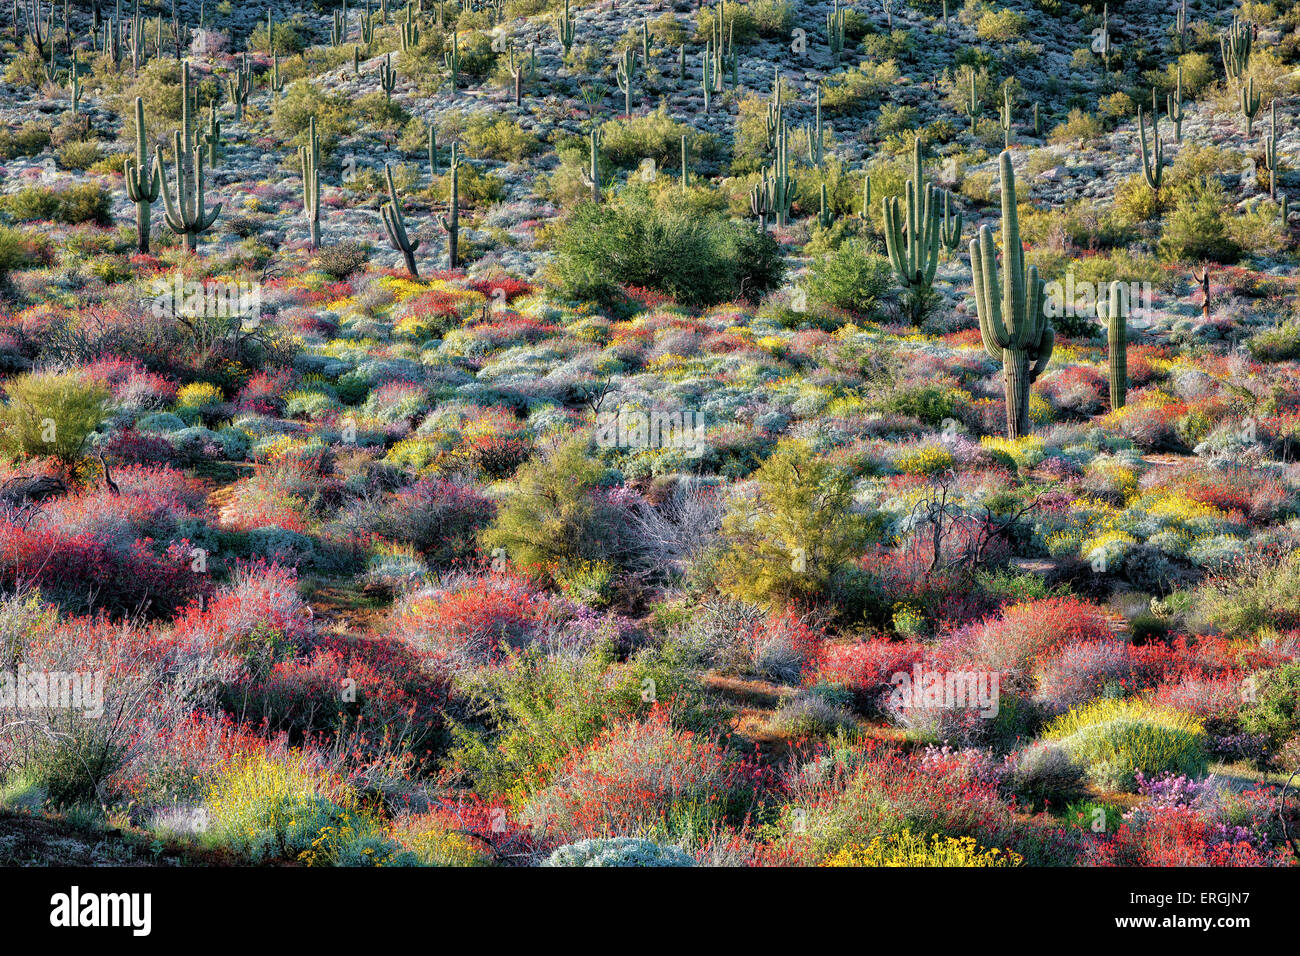 Evening light bathes the spring bloom of red chuparosa and yellow brittle bush on the hills near Bartlett Lake, - Stock Image